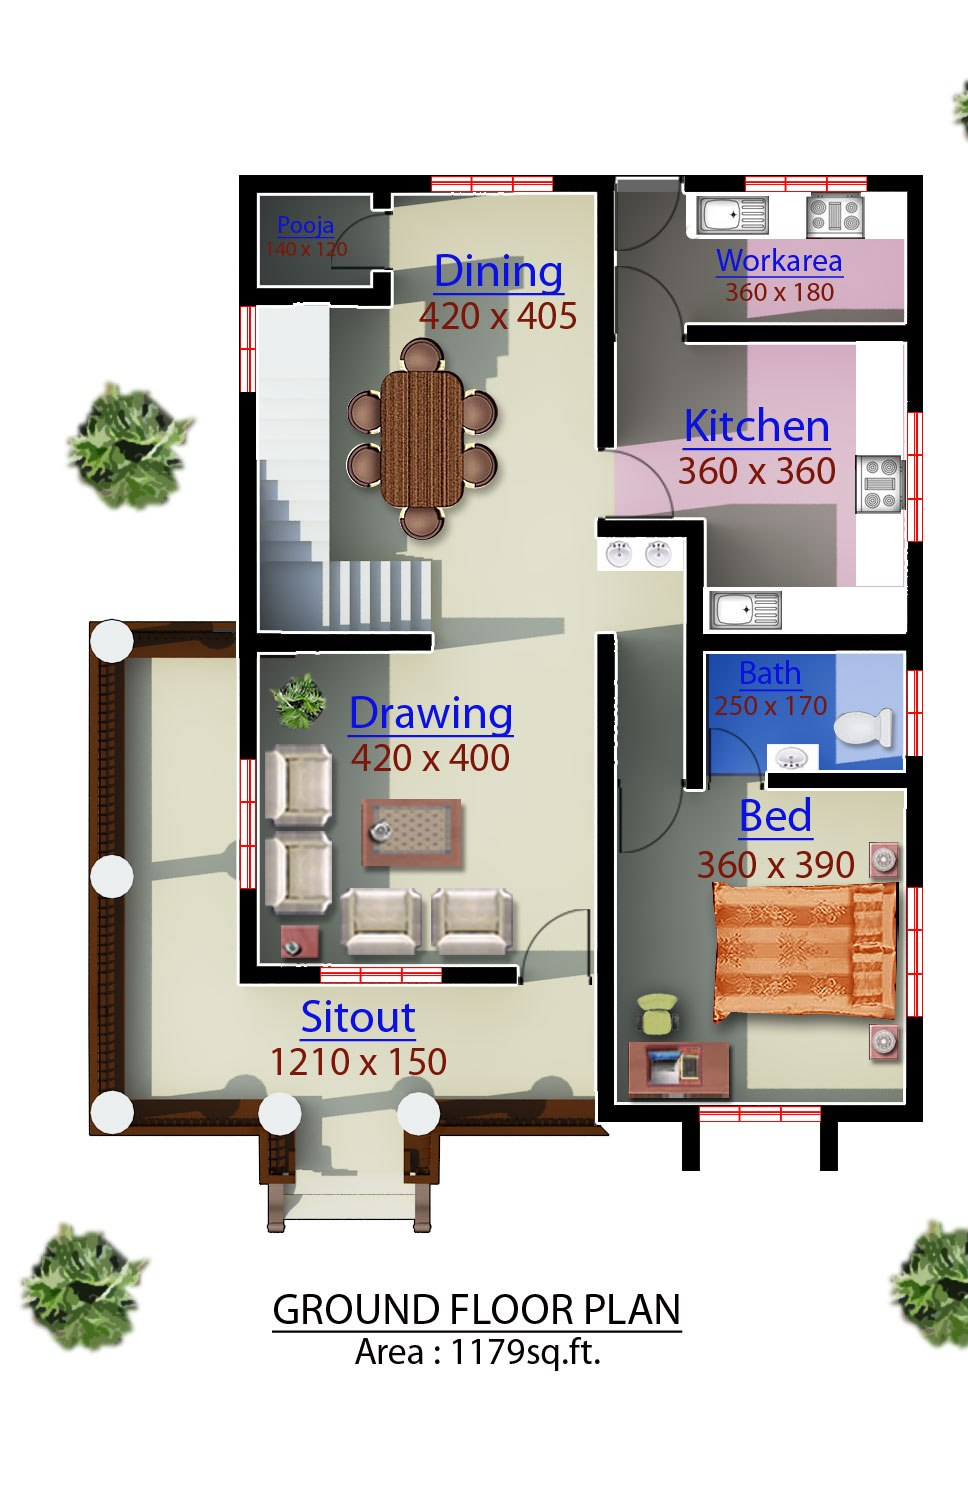 3 bedroom kerala house plans joy studio design gallery for 3 bedroom plan in kerala